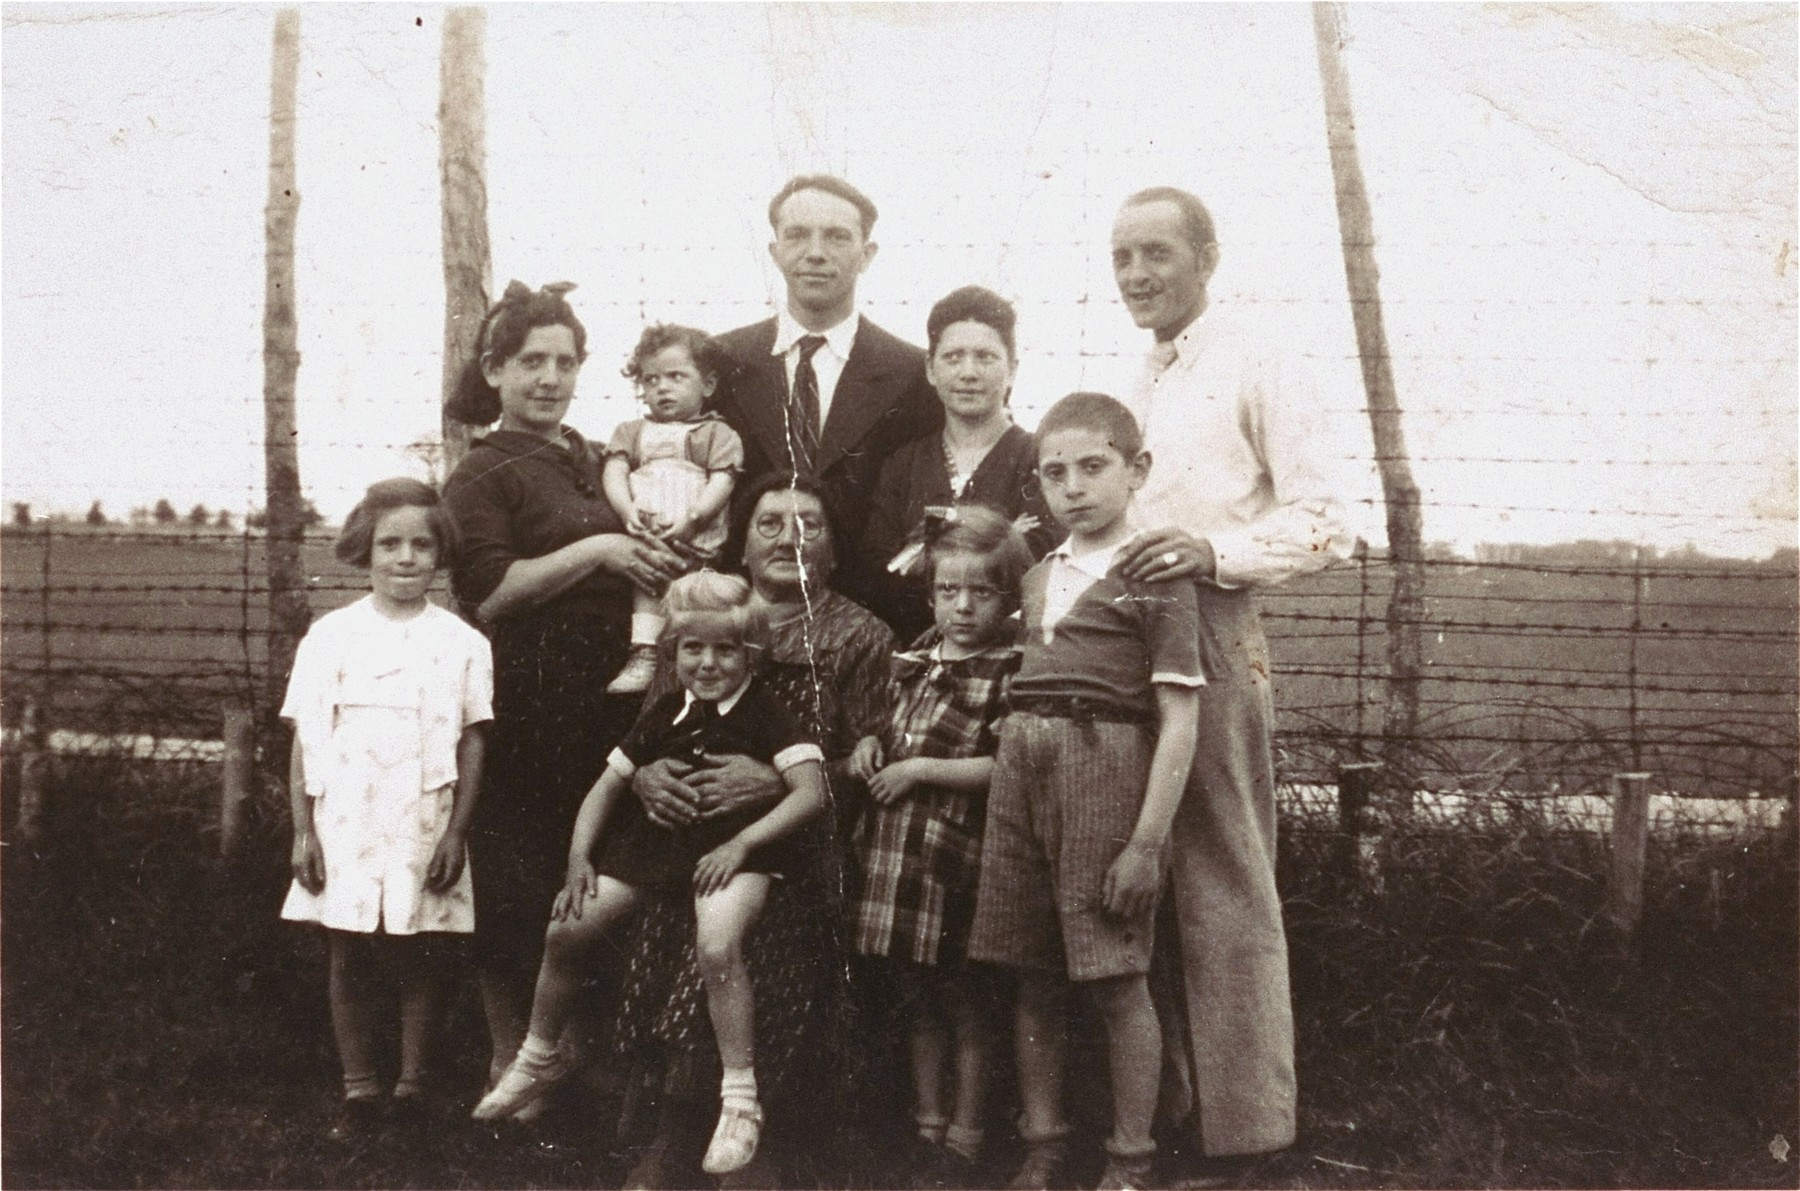 Members of the Goldstein family pose with Nechemia and Esther Kluger in the Poitiers internment camp.    Pictured from left to right are: Anna Goldstein (10), Faigle Goldstein (35), Nechemia Kluger (43), Esther Kluger (40), Llata Goldstein with Renee Goldstein (7), Lara Goldstein (5), David Goldstein (13), and Albert Goldstein (34).